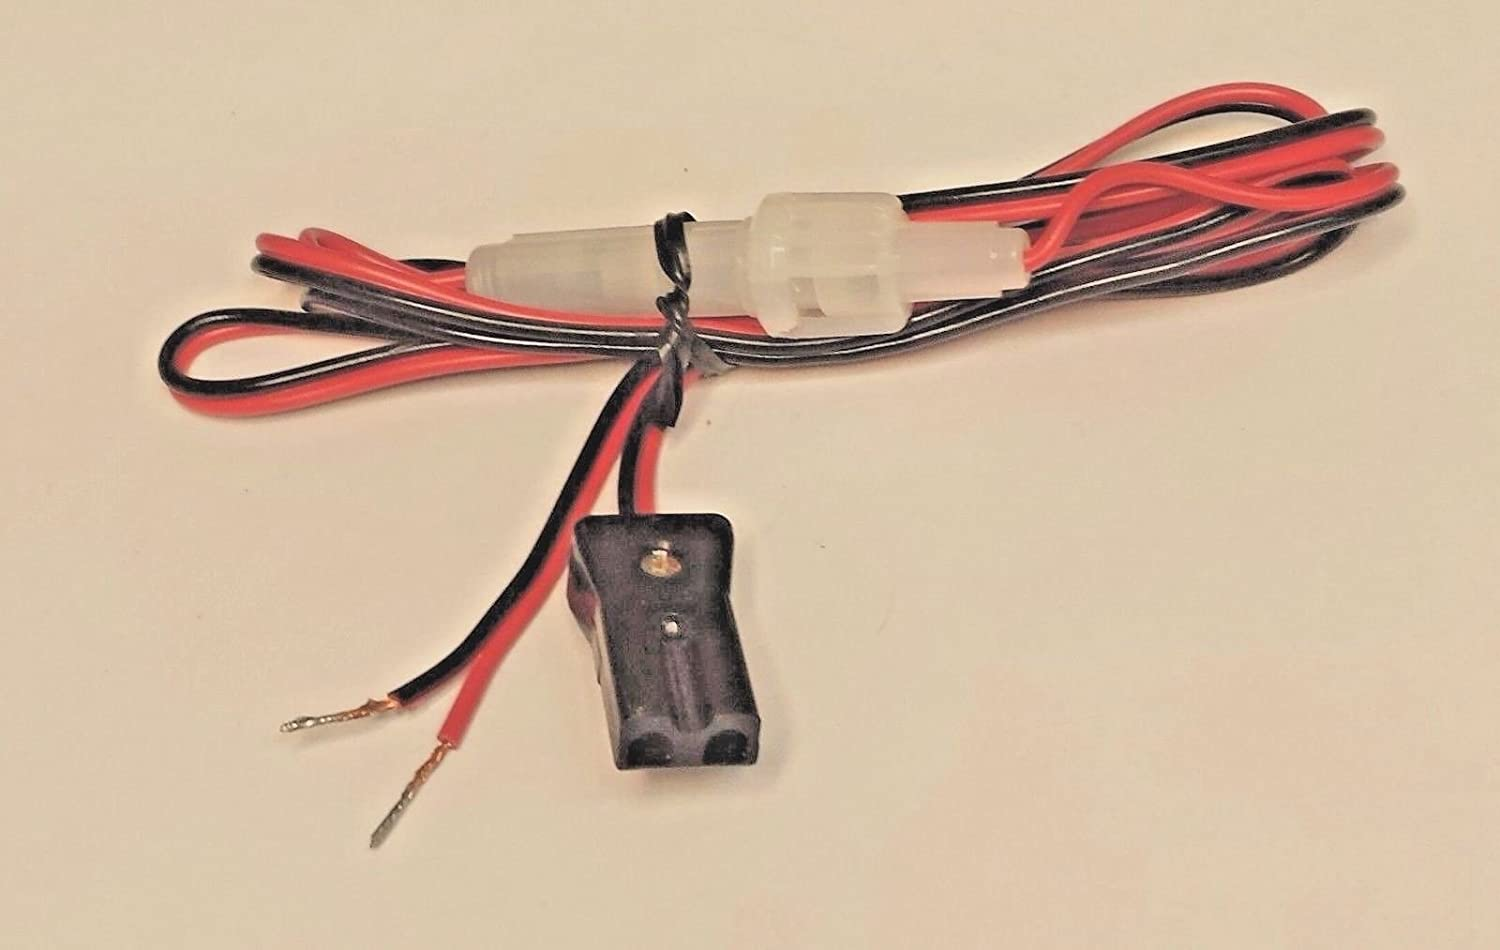 3 pin Power Cord with 2 Amp Fuse for CB Radio.